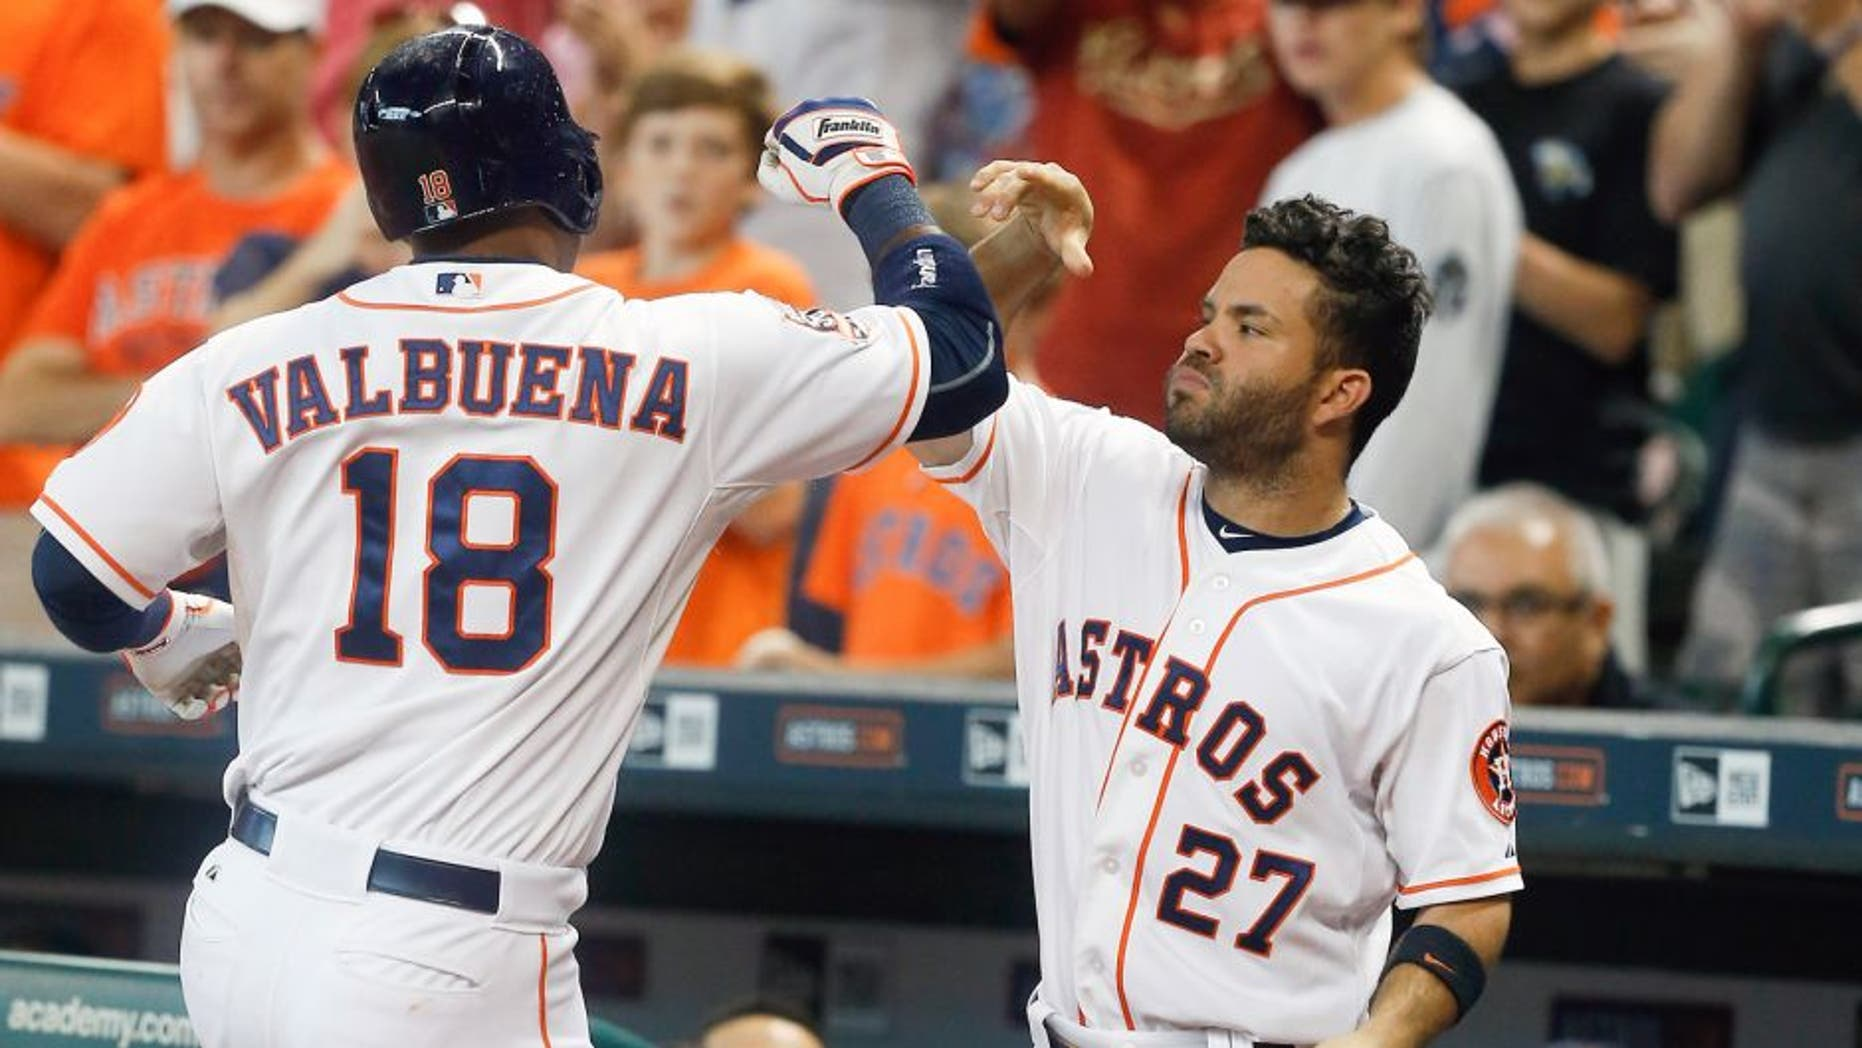 HOUSTON, TX - AUGUST 22: Luis Valbuena #18 of the Houston Astros celebrates with Jose Altuve #27 afer hitting a home run in the second inning against the Los Angeles Dodgers at Minute Maid Park on August 22, 2015 in Houston, Texas. (Photo by Bob Levey/Getty Images)